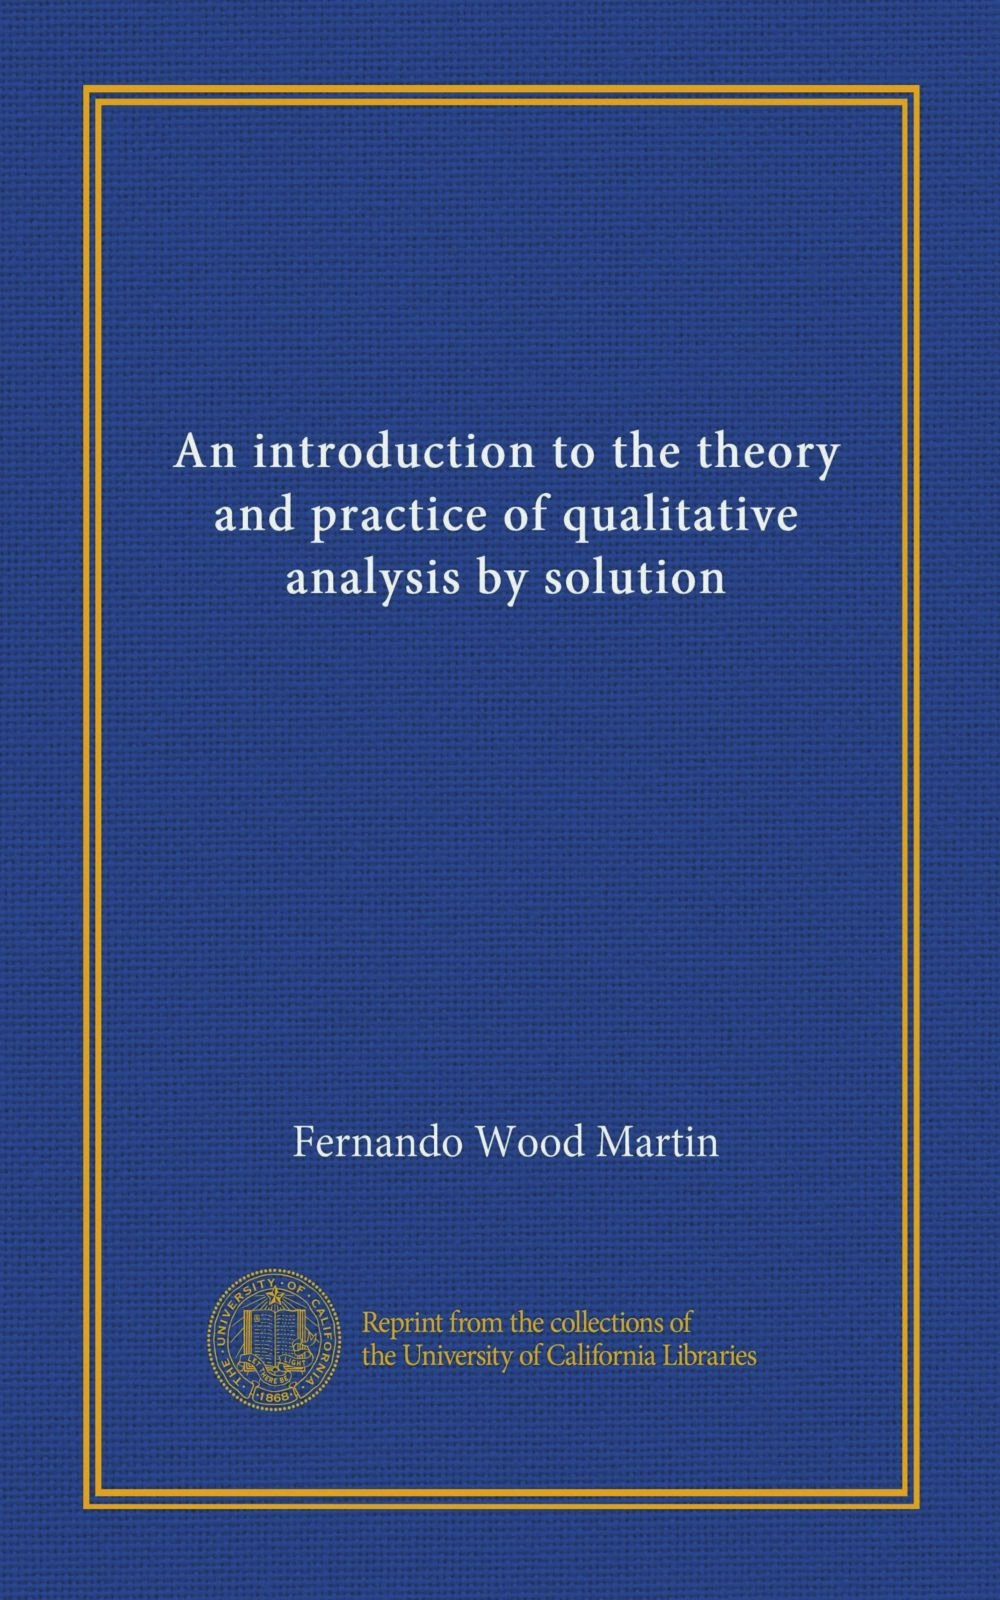 Download An introduction to the theory and practice of qualitative analysis by solution pdf